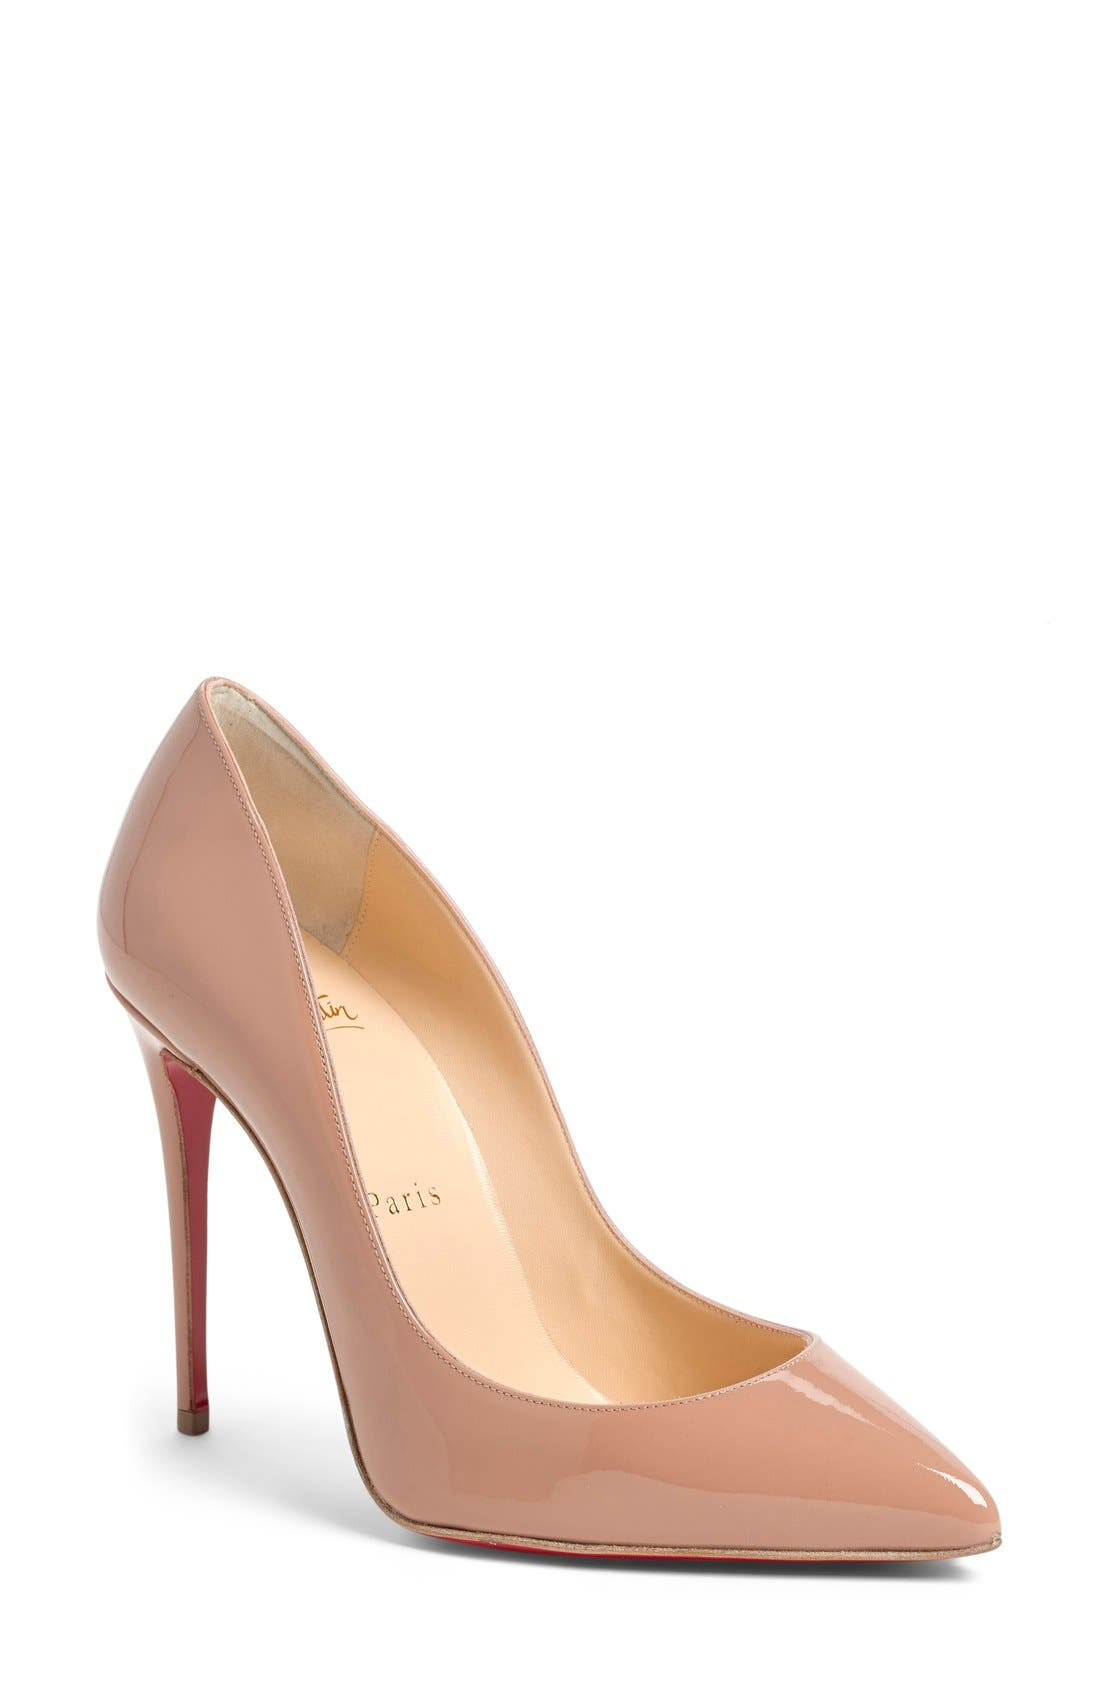 Pictures Of High Heel Shoes UXKMy3Fq